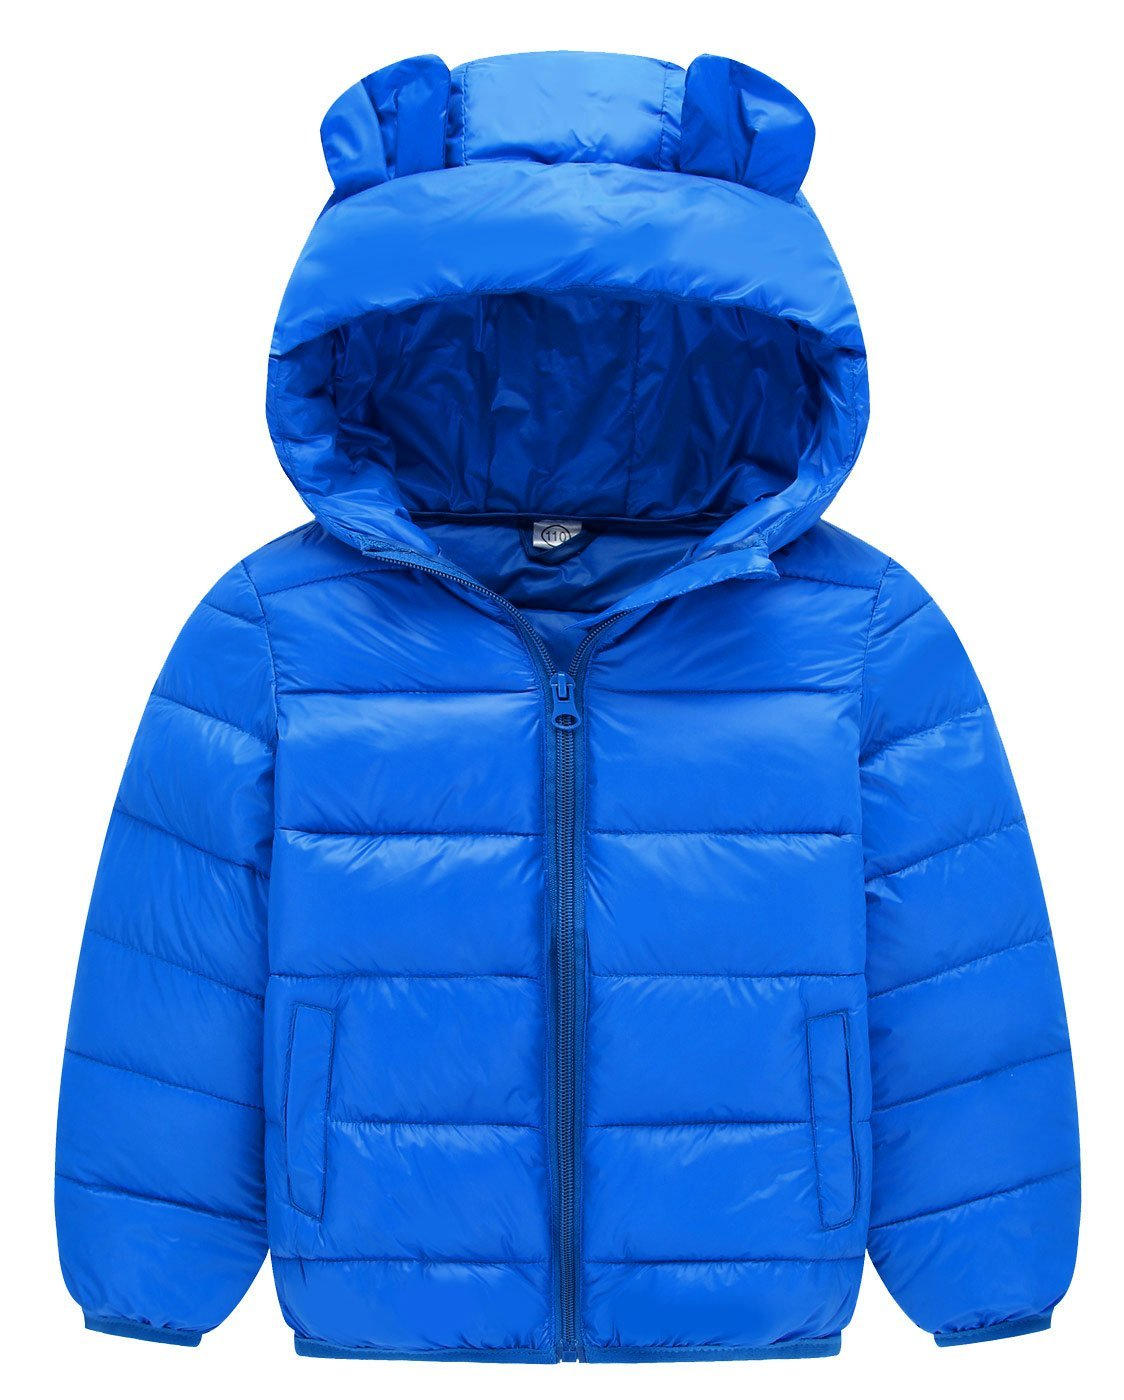 Happy Cherry Boys Thicken Coat Long Sleeve Hand Pockets Windproof Winter Warm Hooded Jacket Uniform 5-6T Blue